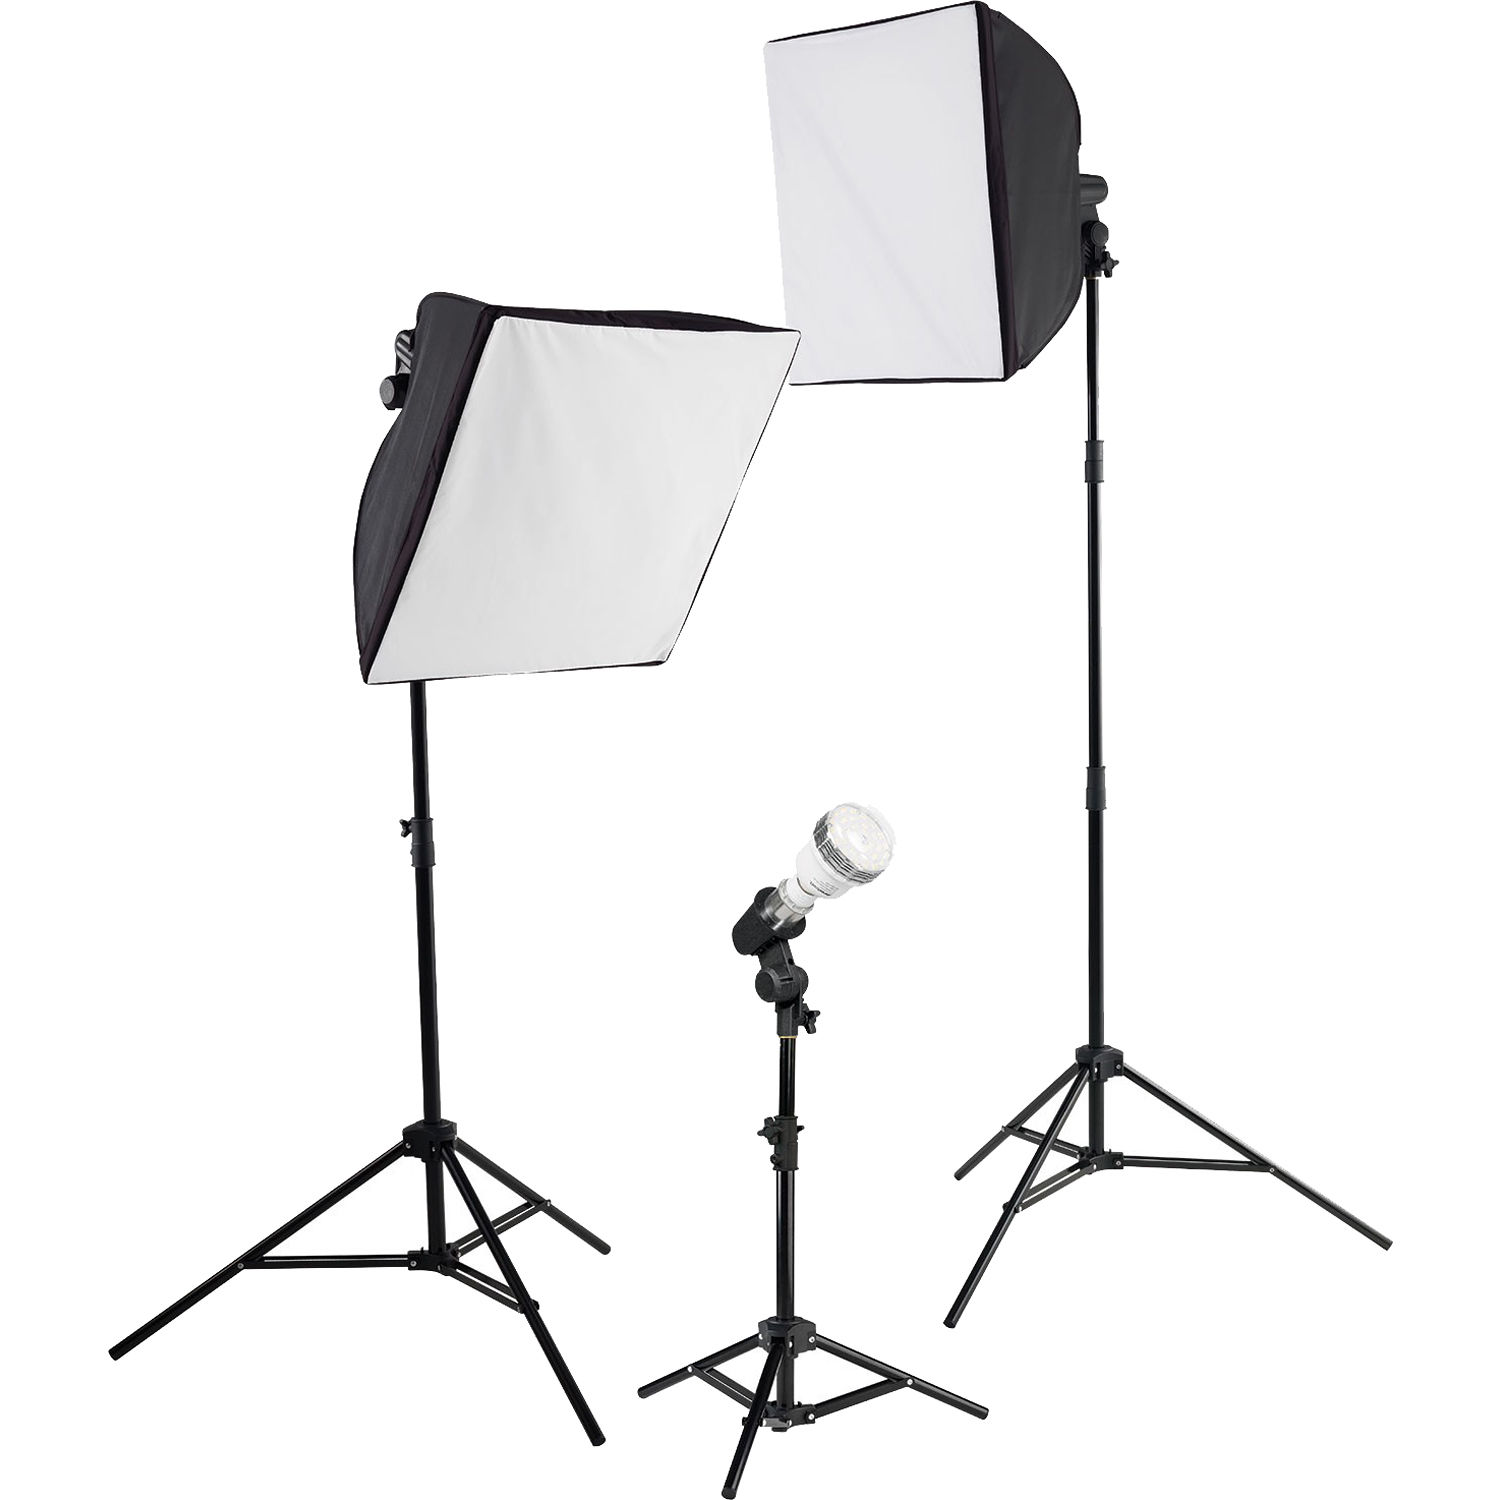 Soft Studio Lighting Kit: Westcott ULite LED 3-Light Collapsible Softbox Kit 403L B&H